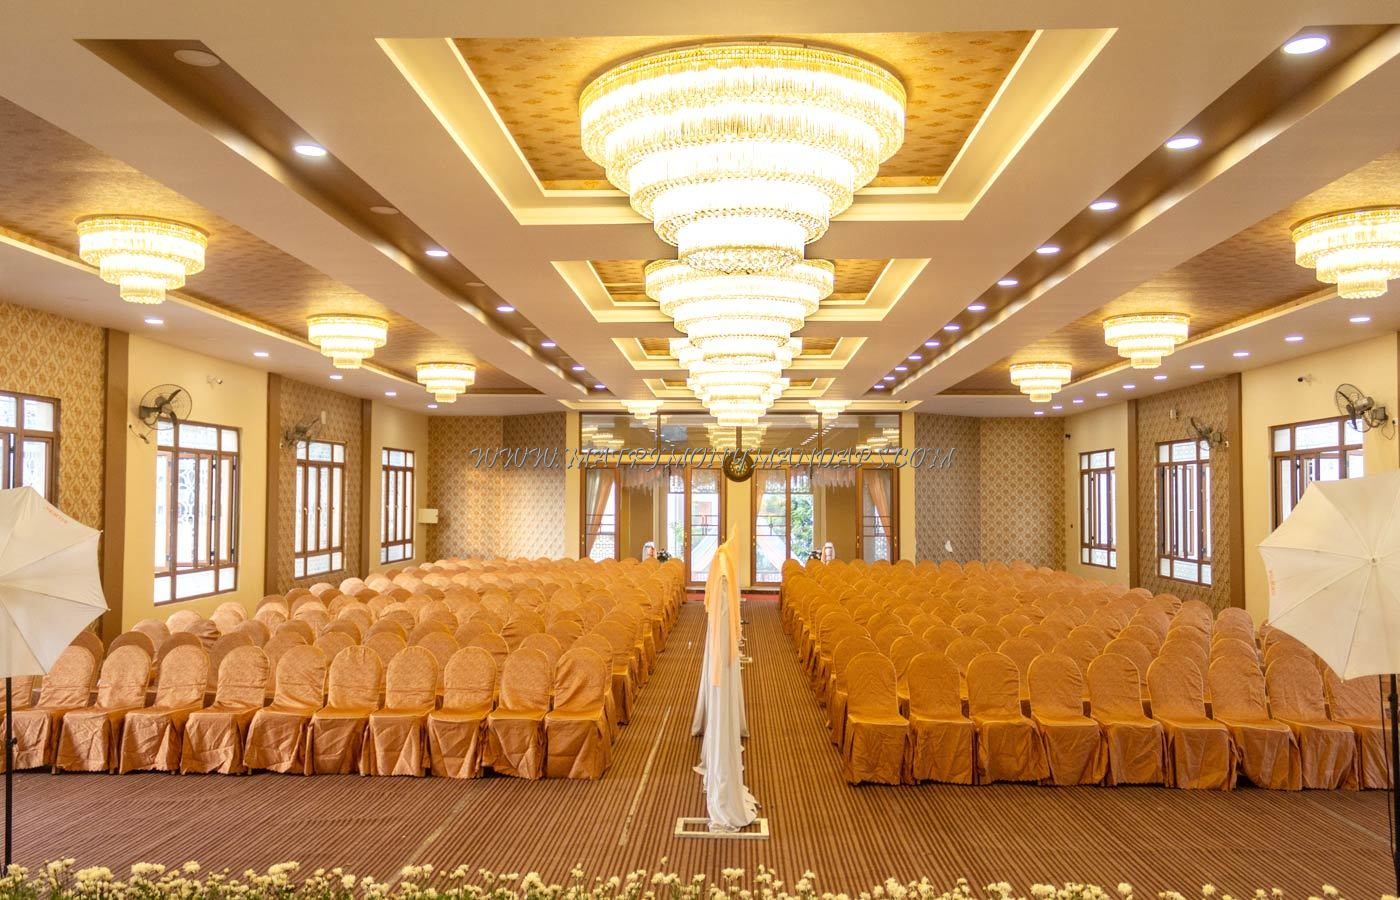 Find the availability of the Royal Pale Convention Hall in Wilson Garden, Bangalore and avail special offers